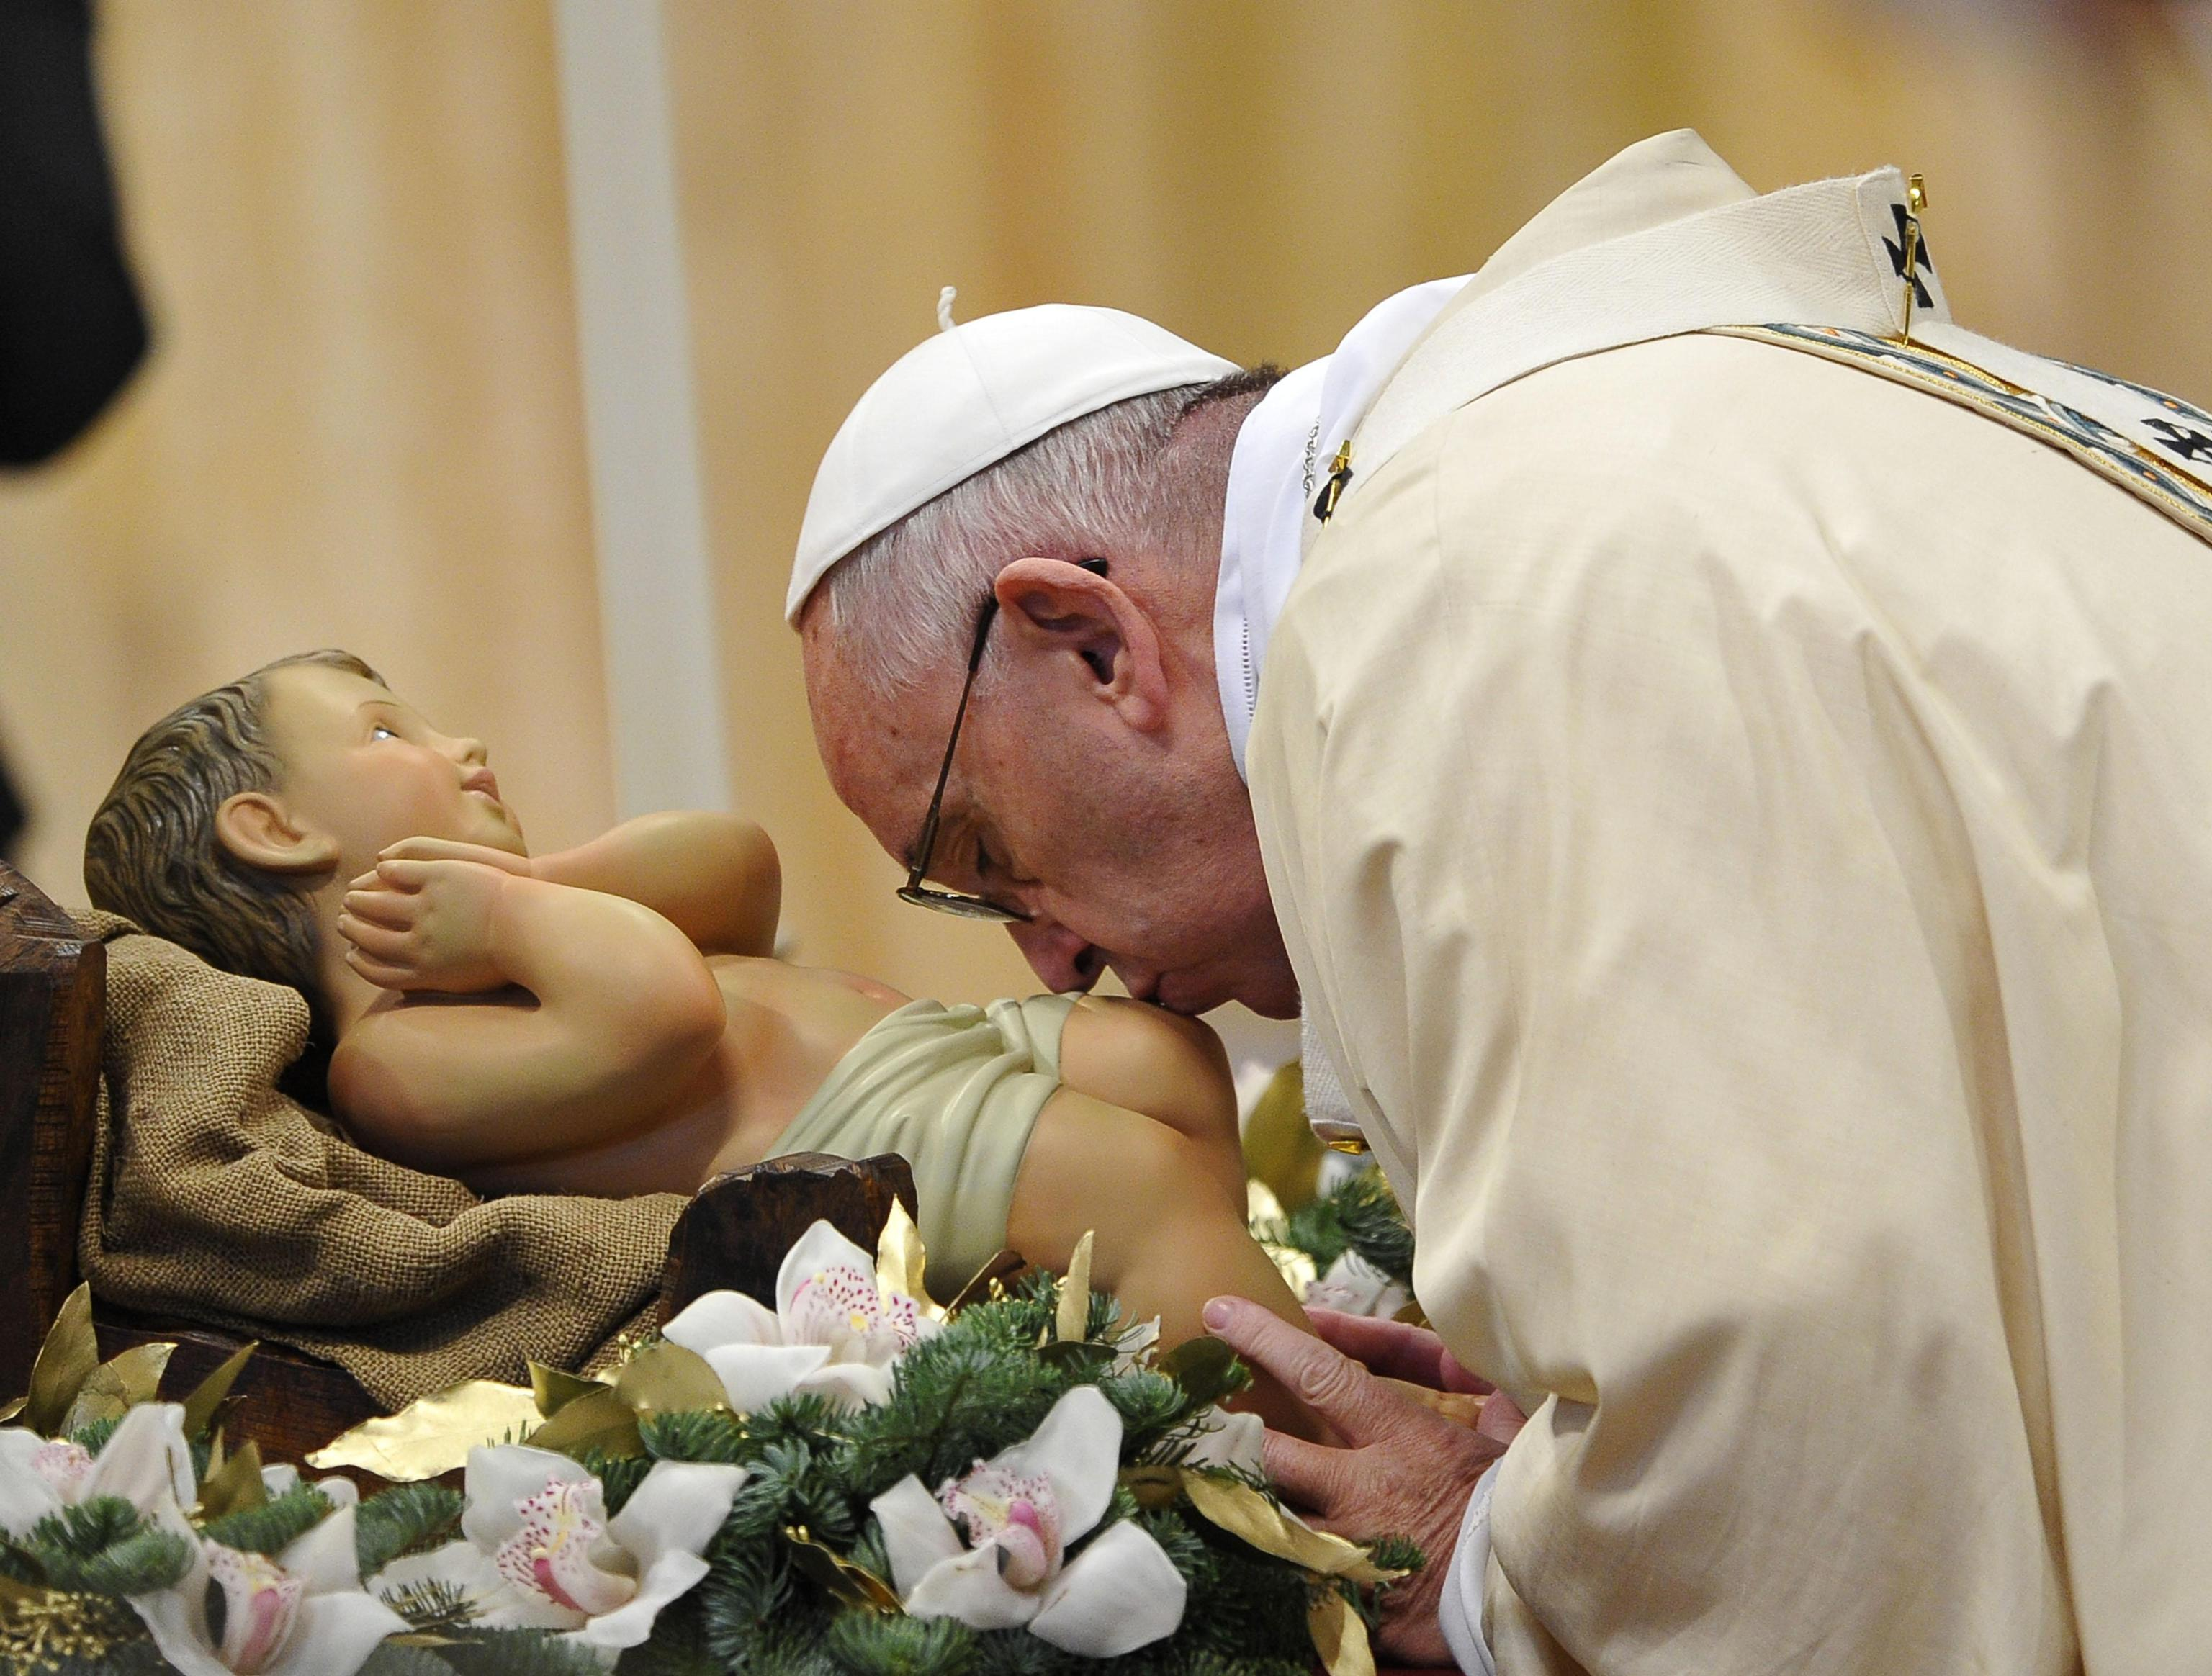 Pope Francis leads the Epiphany mass in Saint Peters Basilica